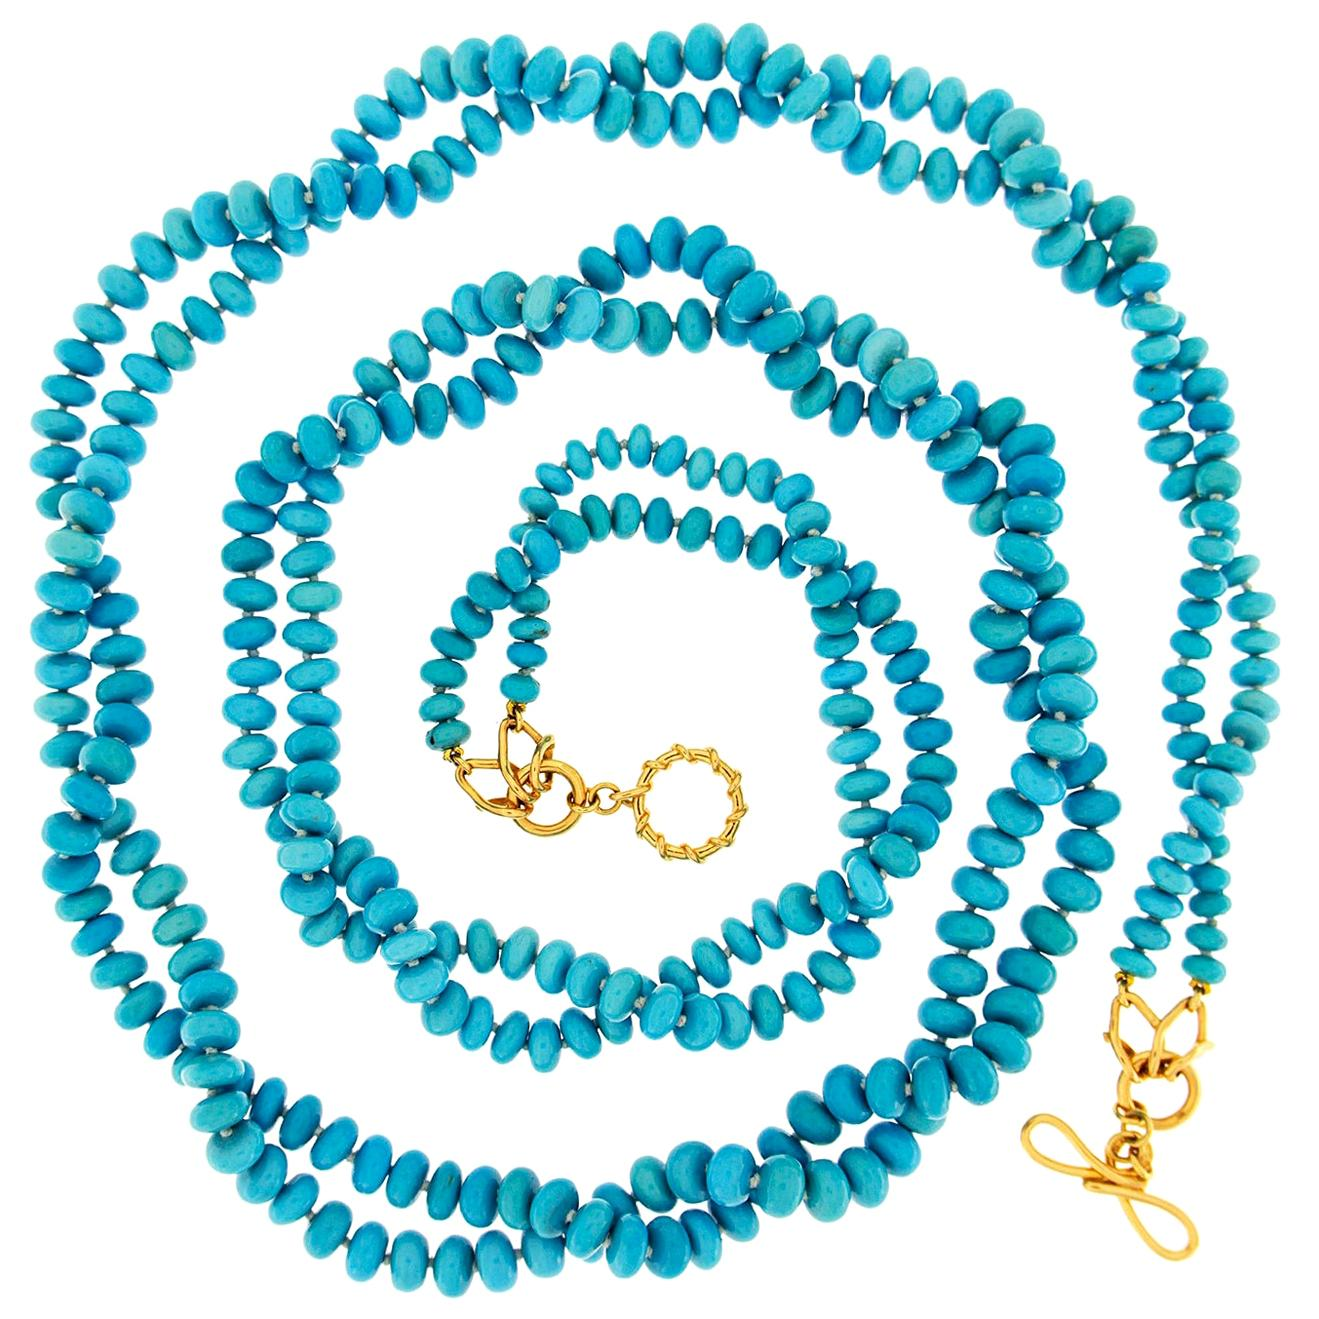 Valentin Magro Two-Strand Turquoise Rondelle Necklace